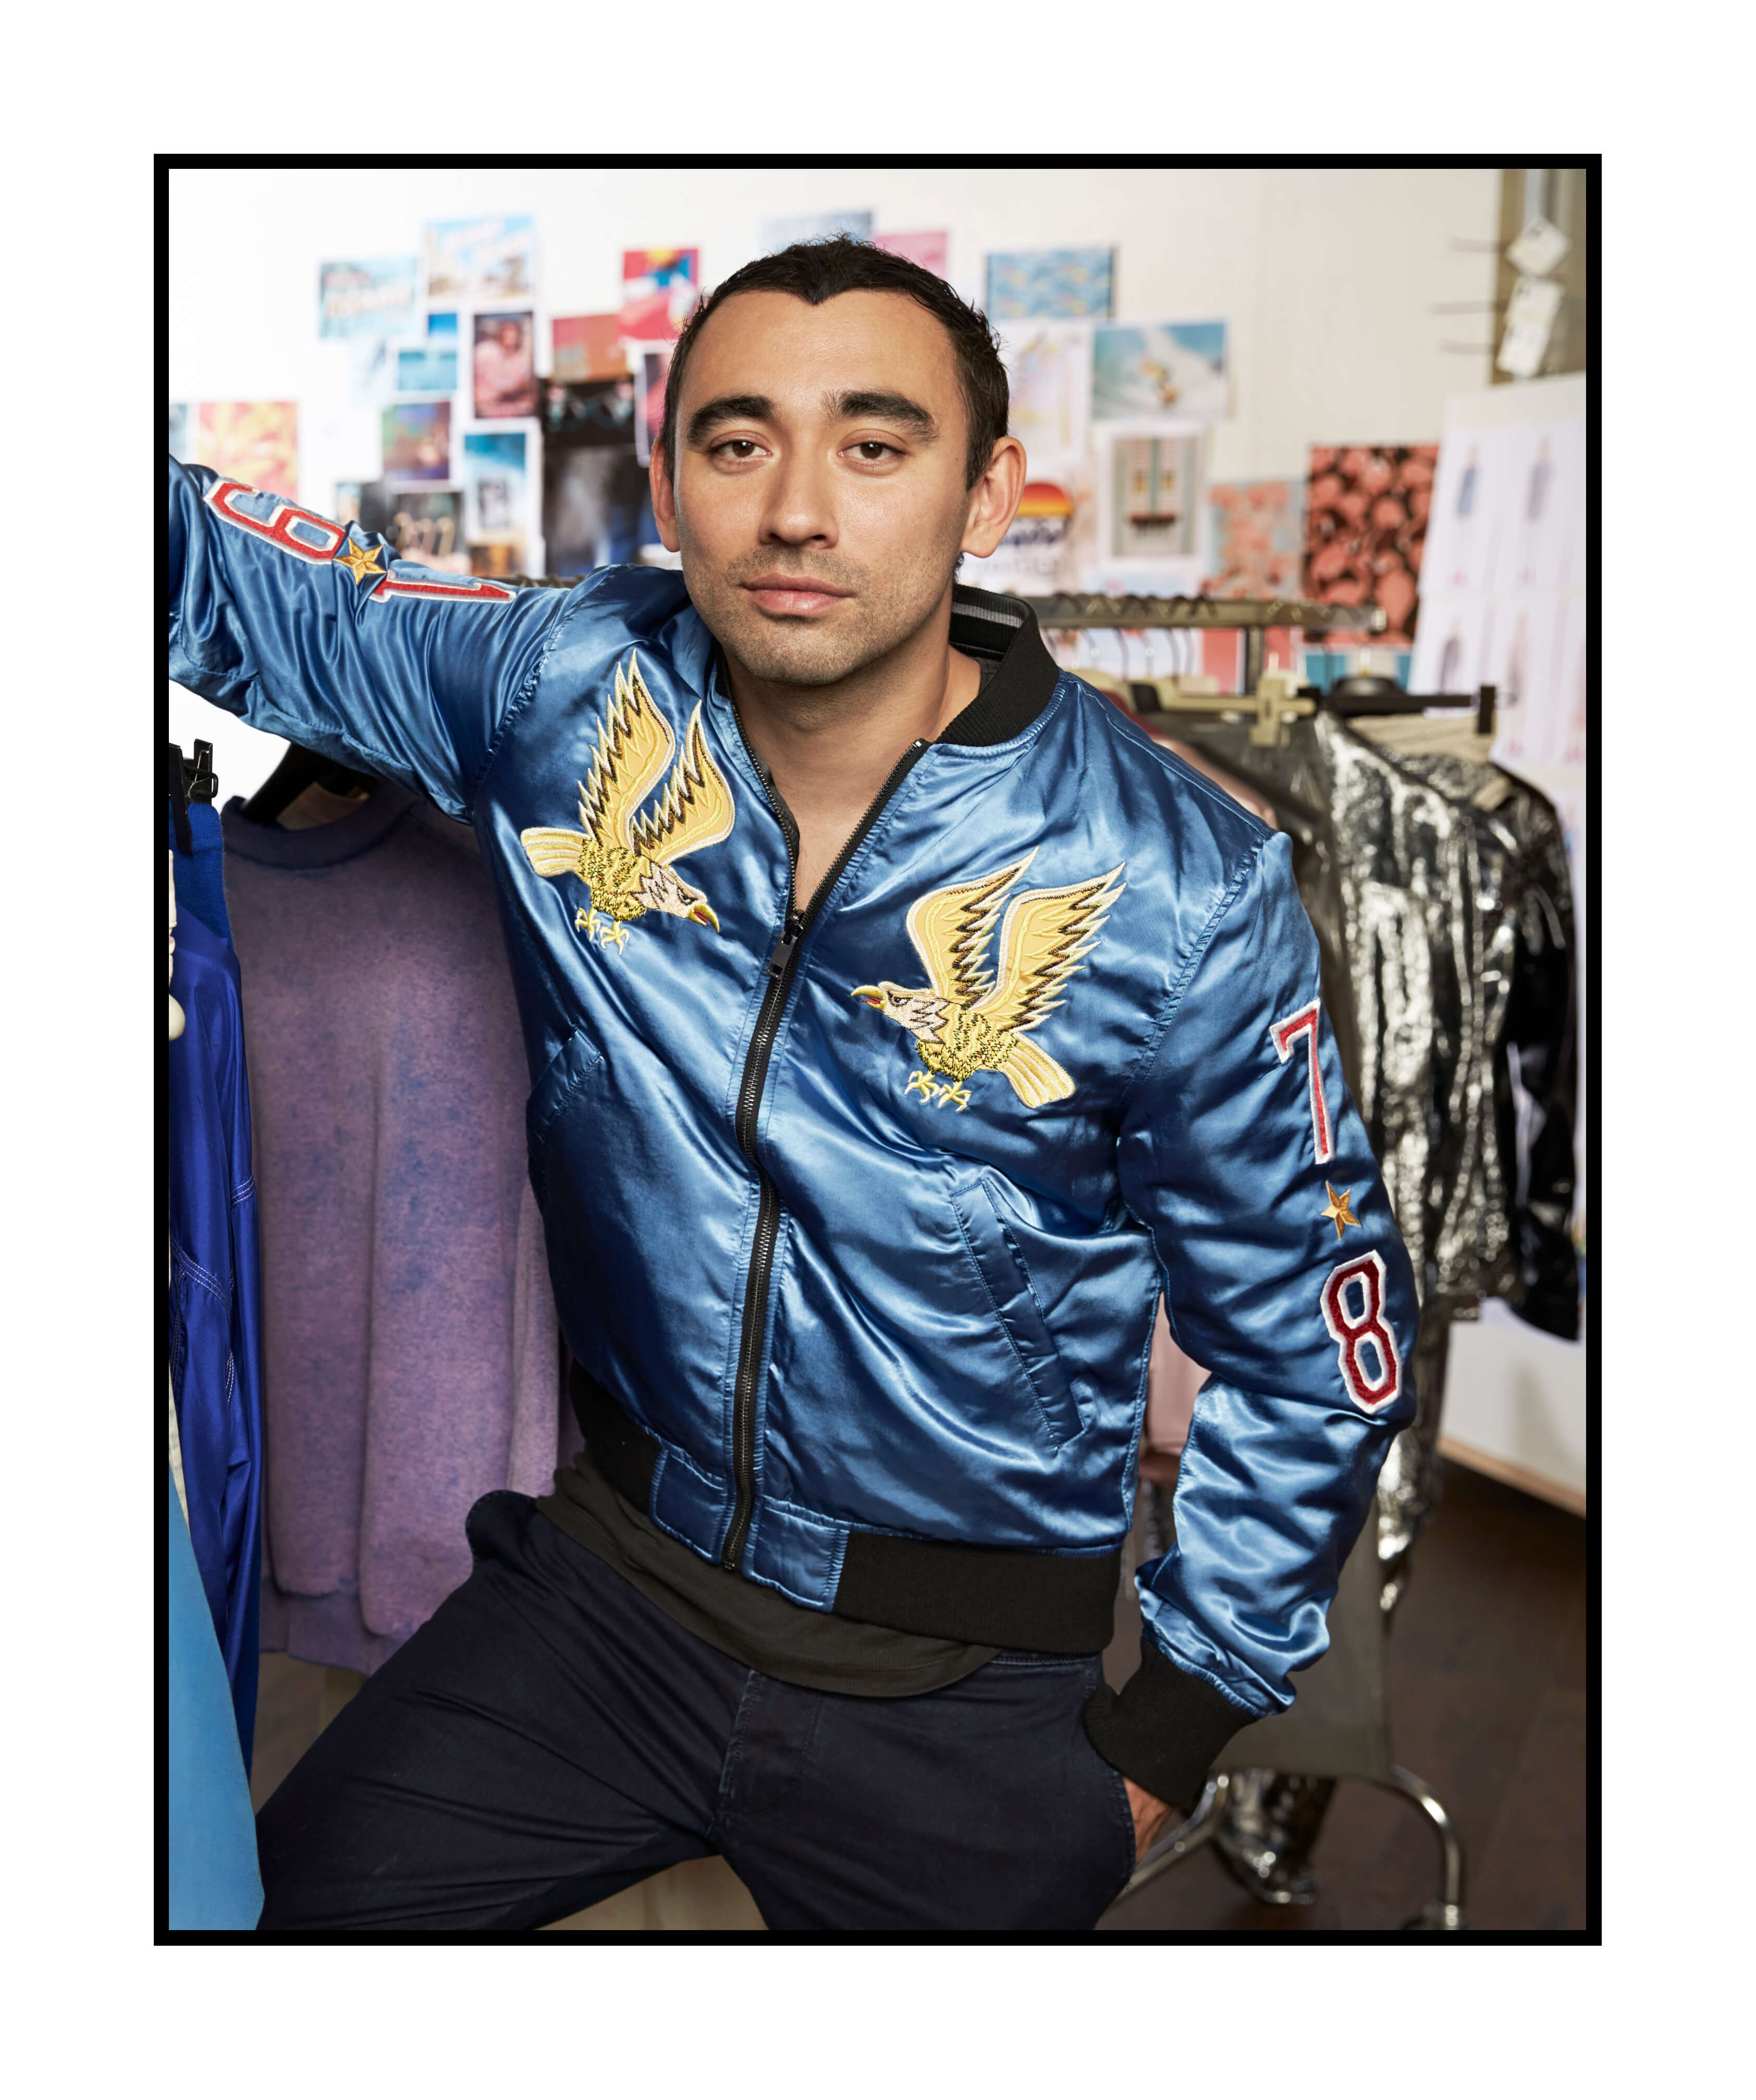 Is formichetti nicola heading to diesel recommendations to wear for on every day in 2019